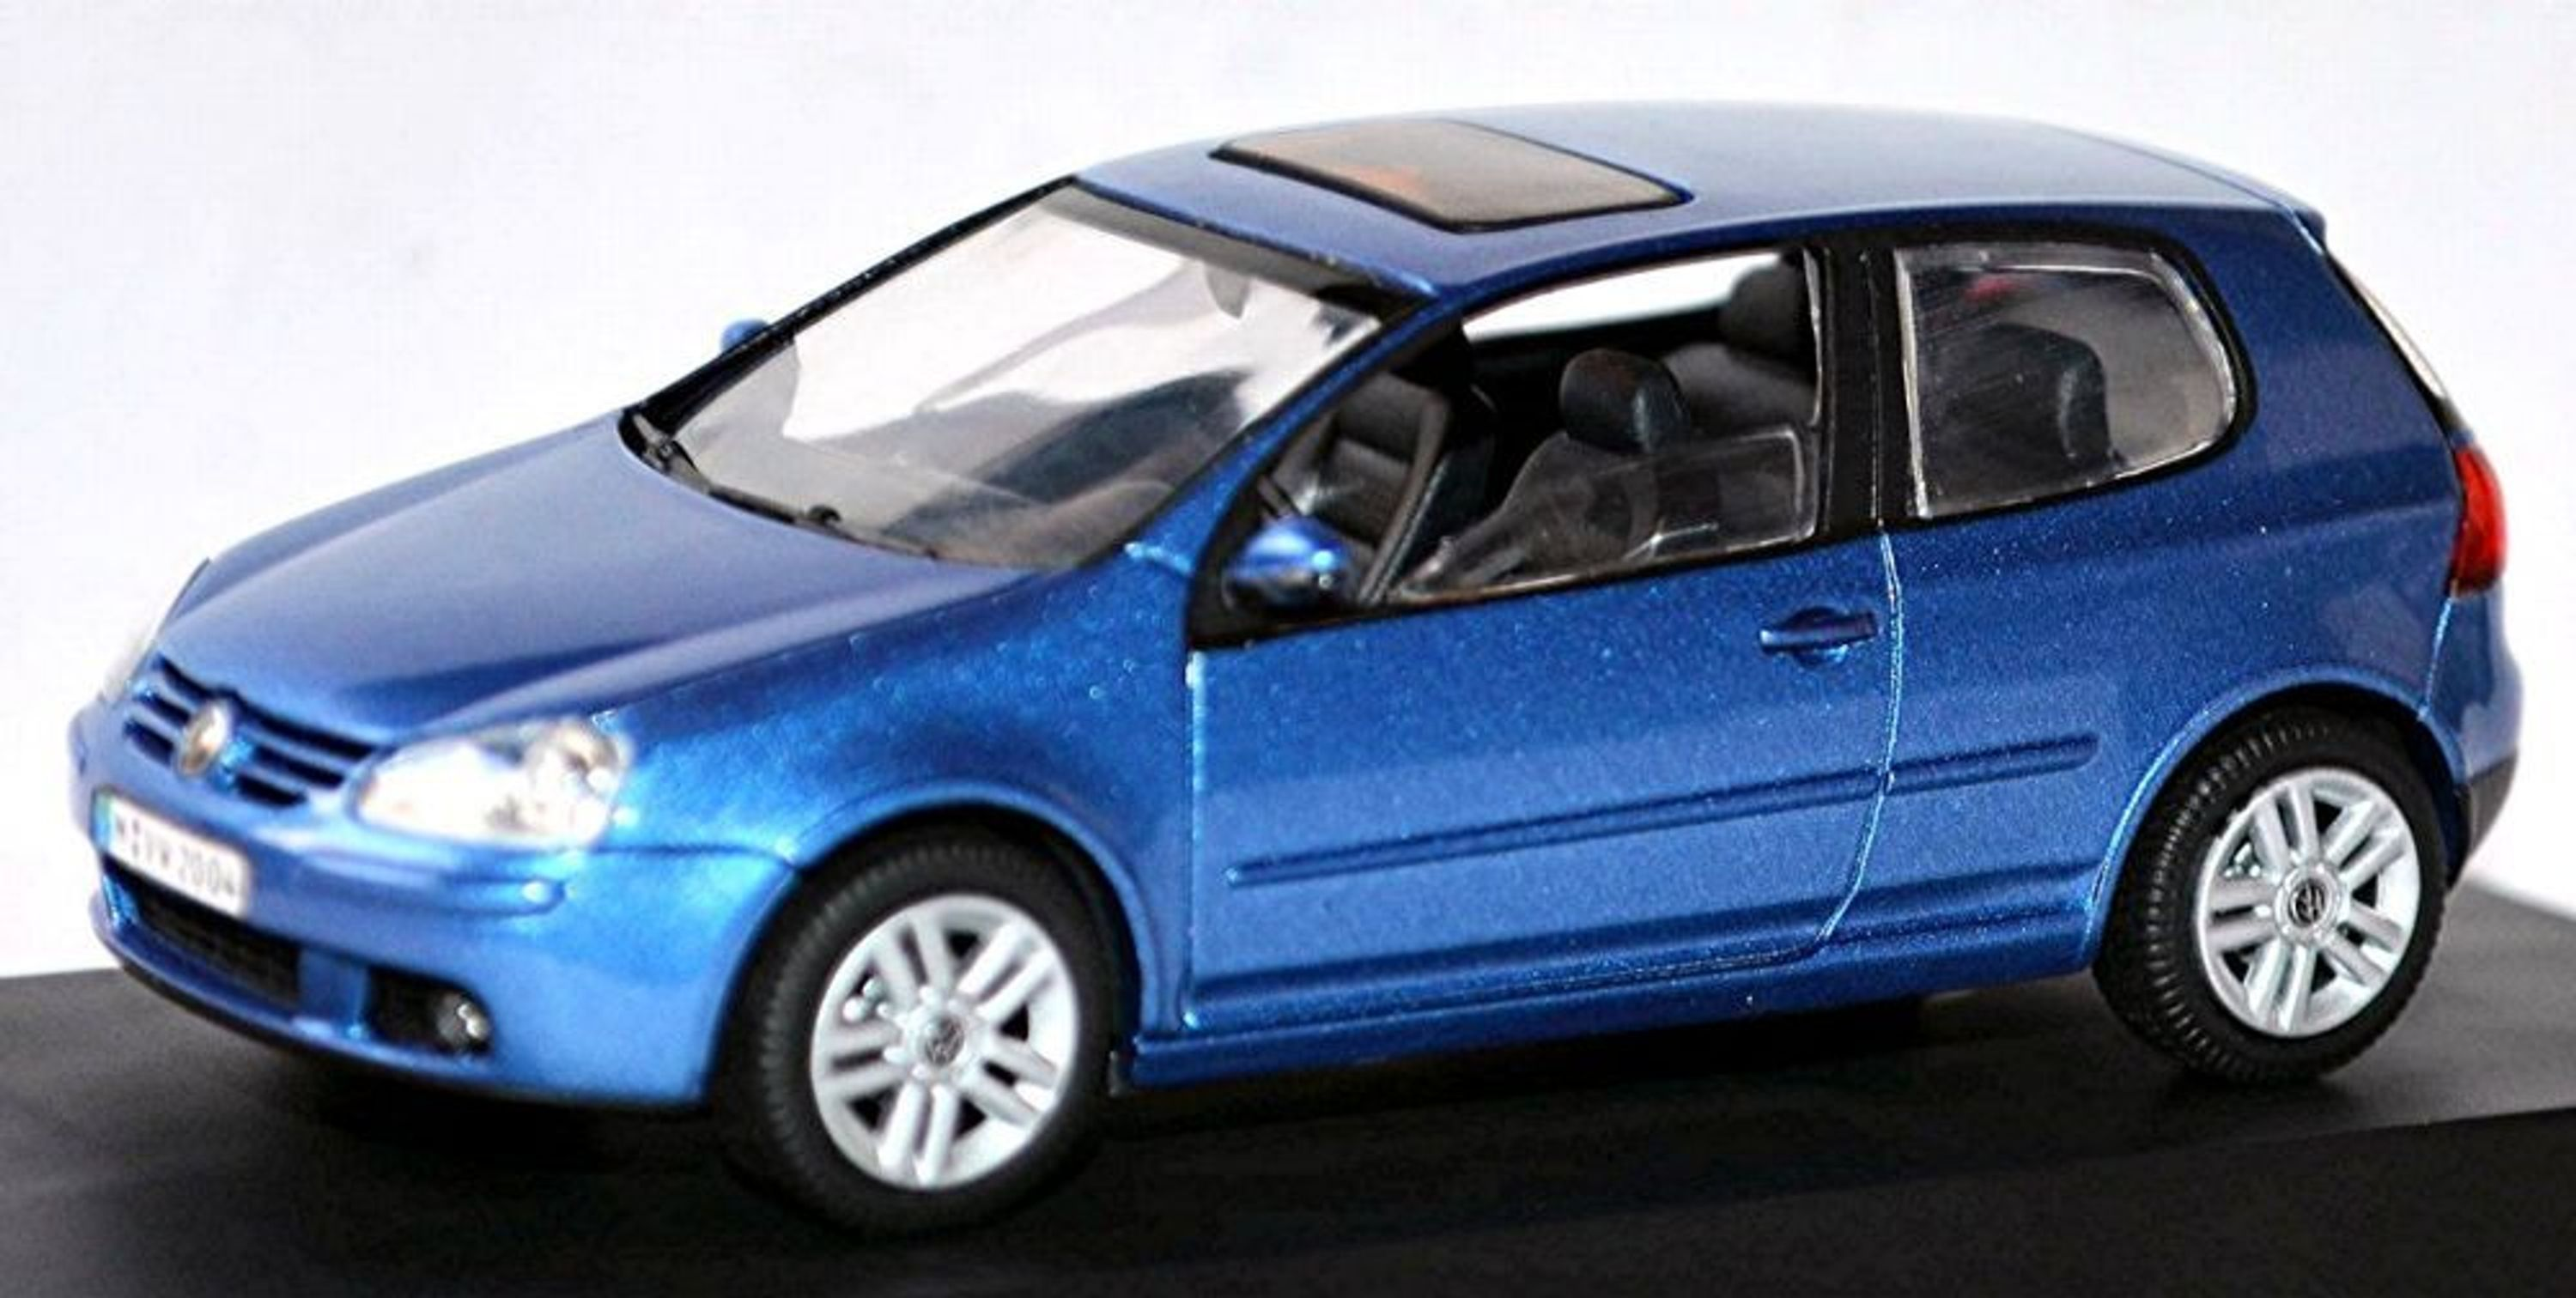 vw volkswagen golf 5 typ 1k 3 portes 2003 08 bleu bleu m tallis 1 43 ebay. Black Bedroom Furniture Sets. Home Design Ideas